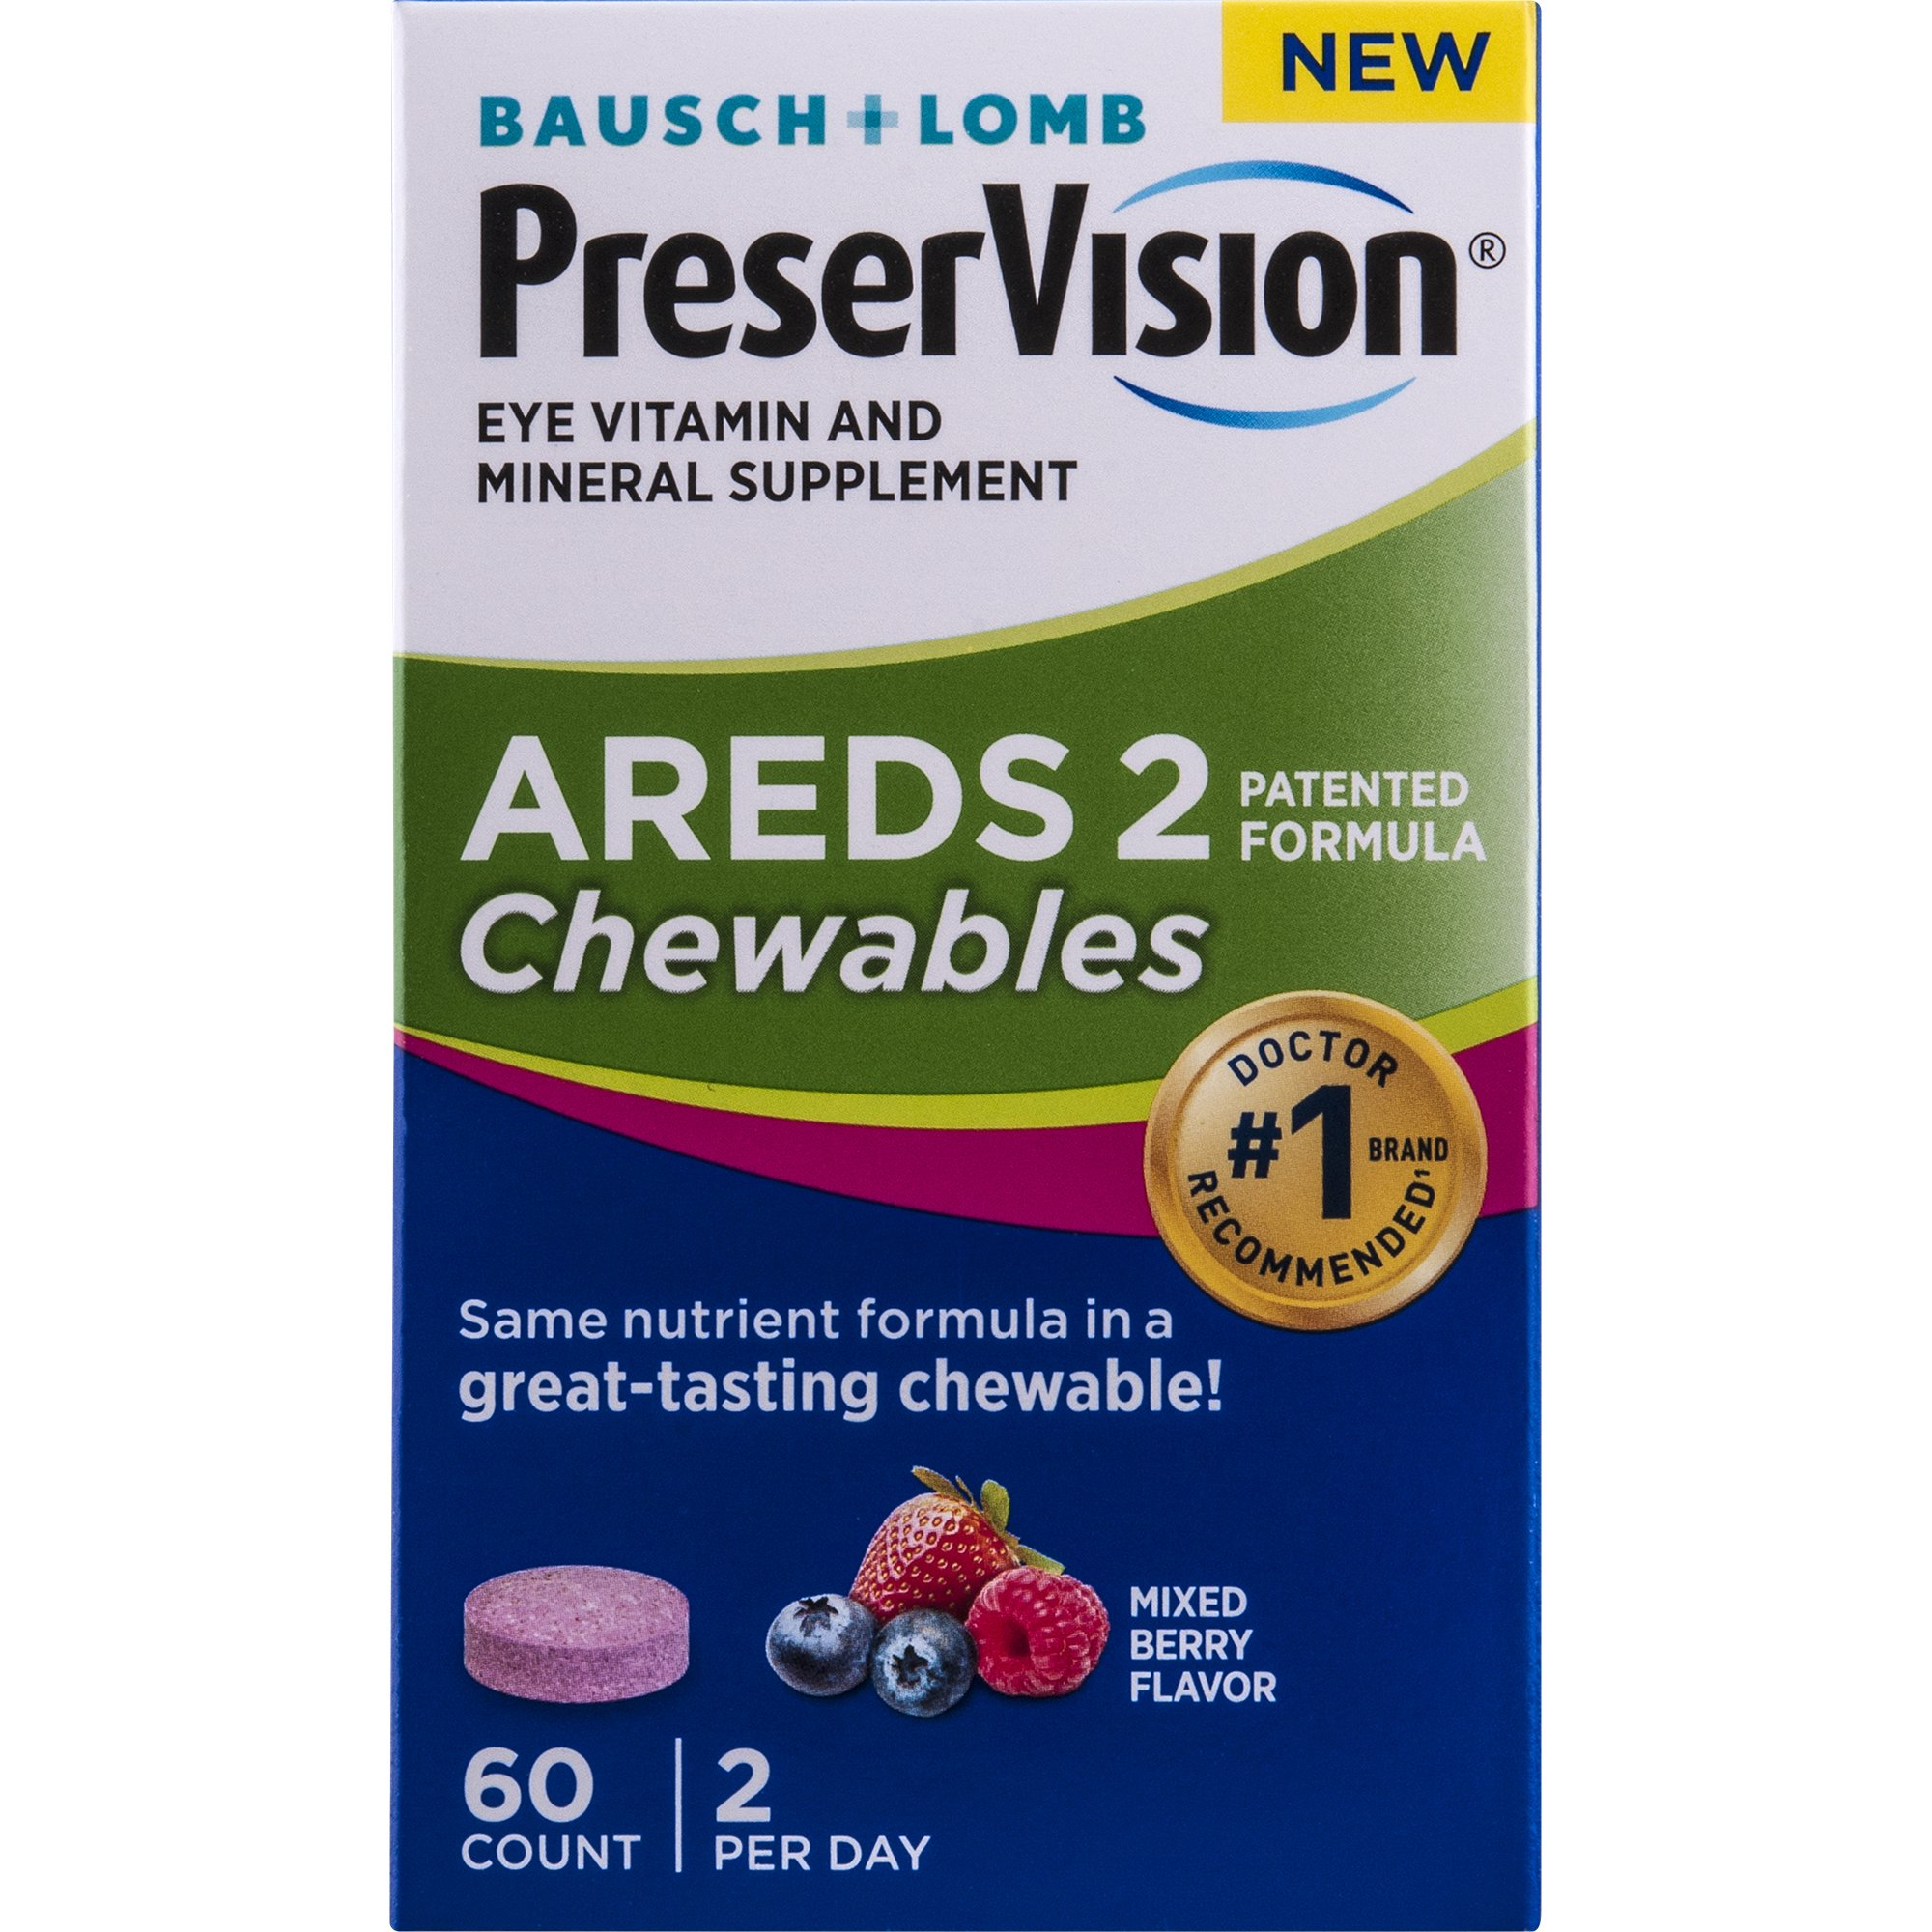 Preservision Areds 2 Formula Chewables, 60 Count by PreserVision